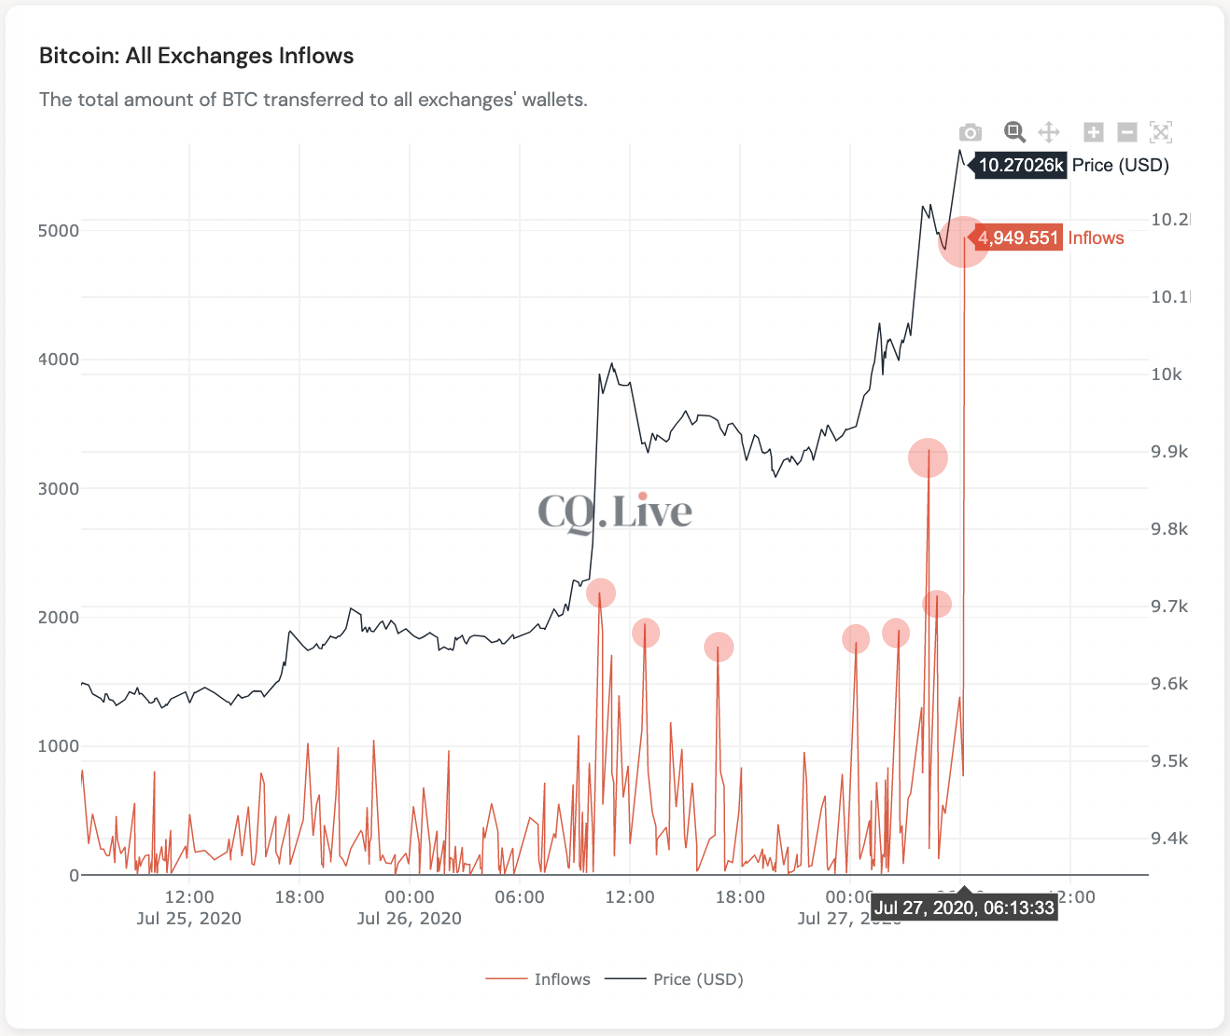 Bitcoin exchange inflows spike as BTC surges